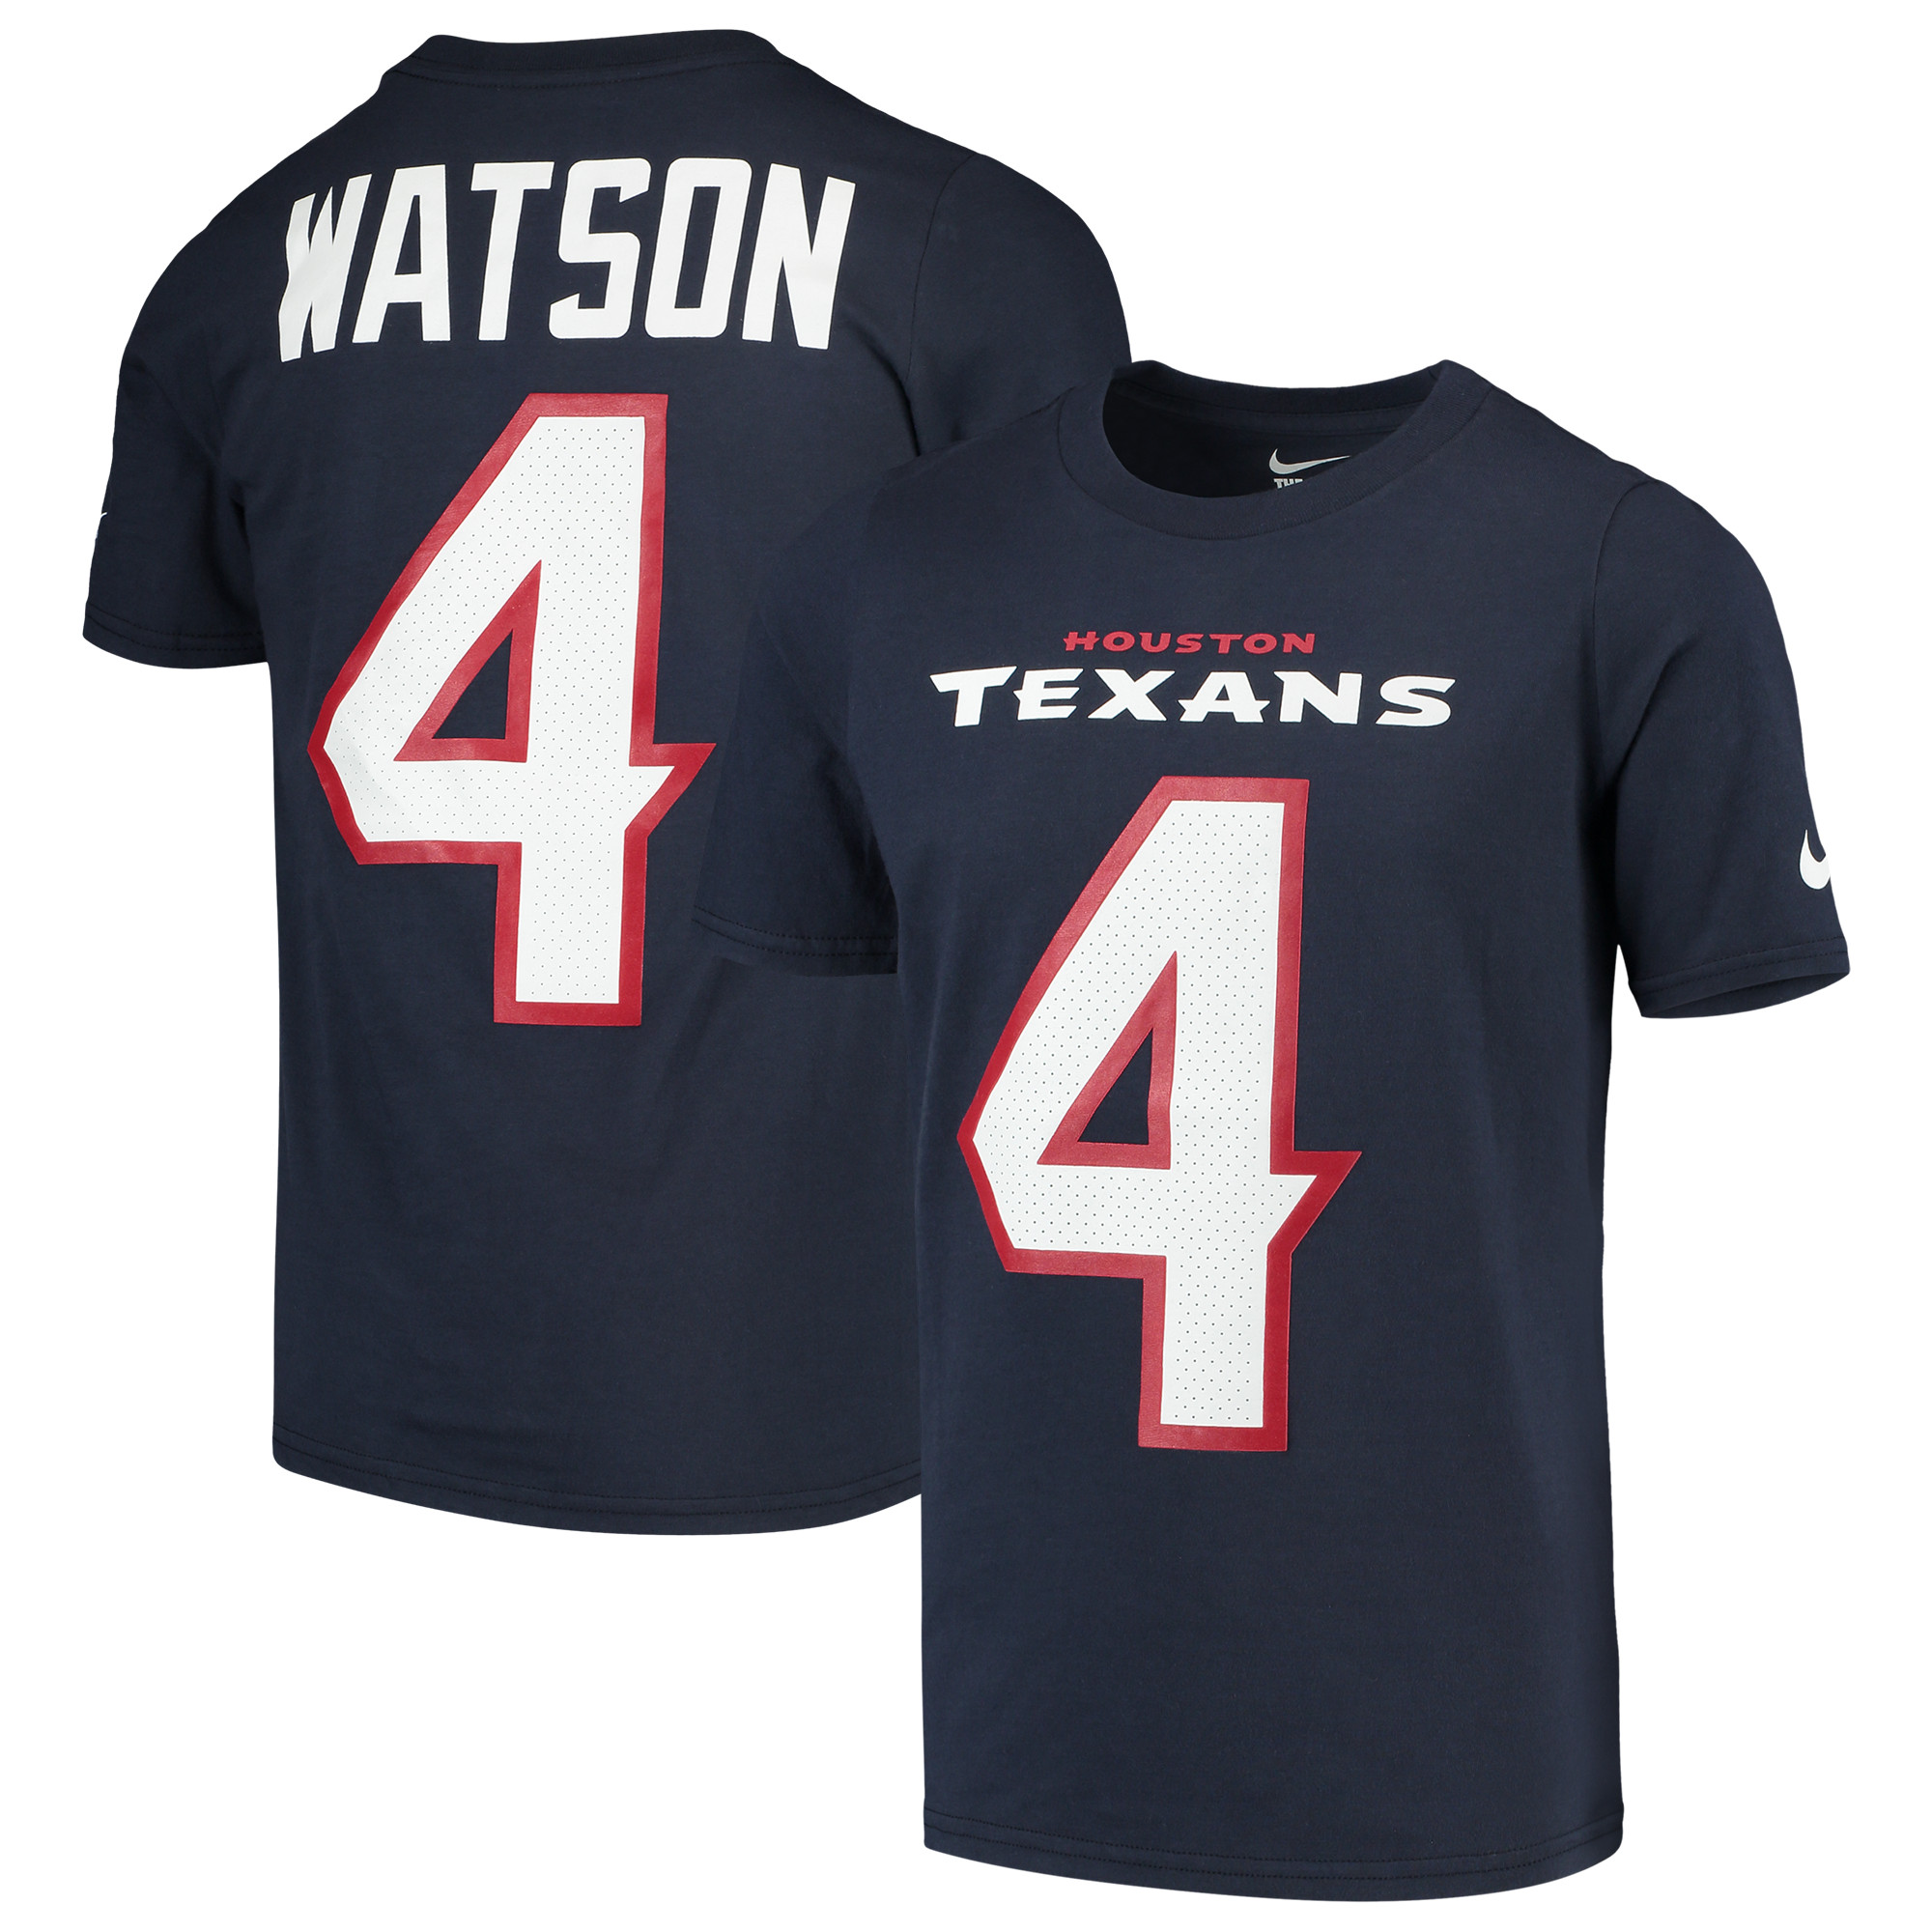 Deshaun Watson Houston Texans Nike Youth Player Pride 3.0 Name & Number T-Shirt - Navy